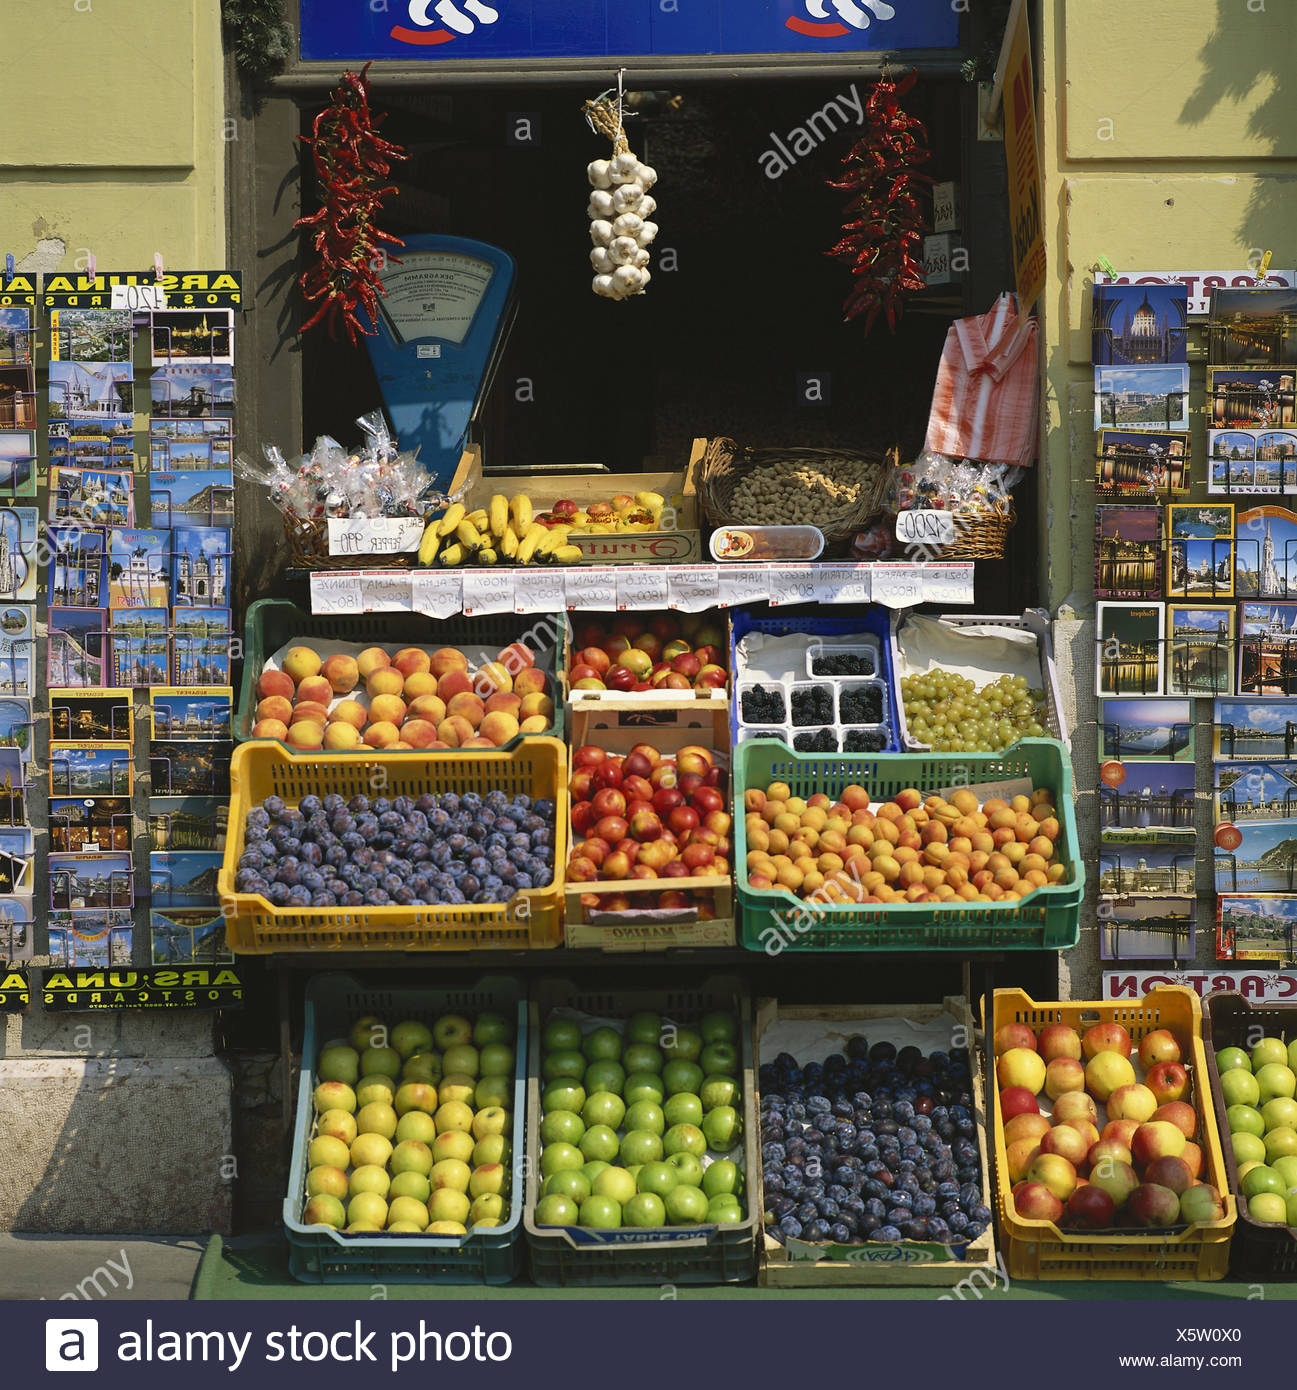 Hungary, Budapest, business, sales, fruit, postcards, Europe, capital, economy, sell, fruits, apples, apricots, nectarines, plums, grapes, postcards - Stock Image